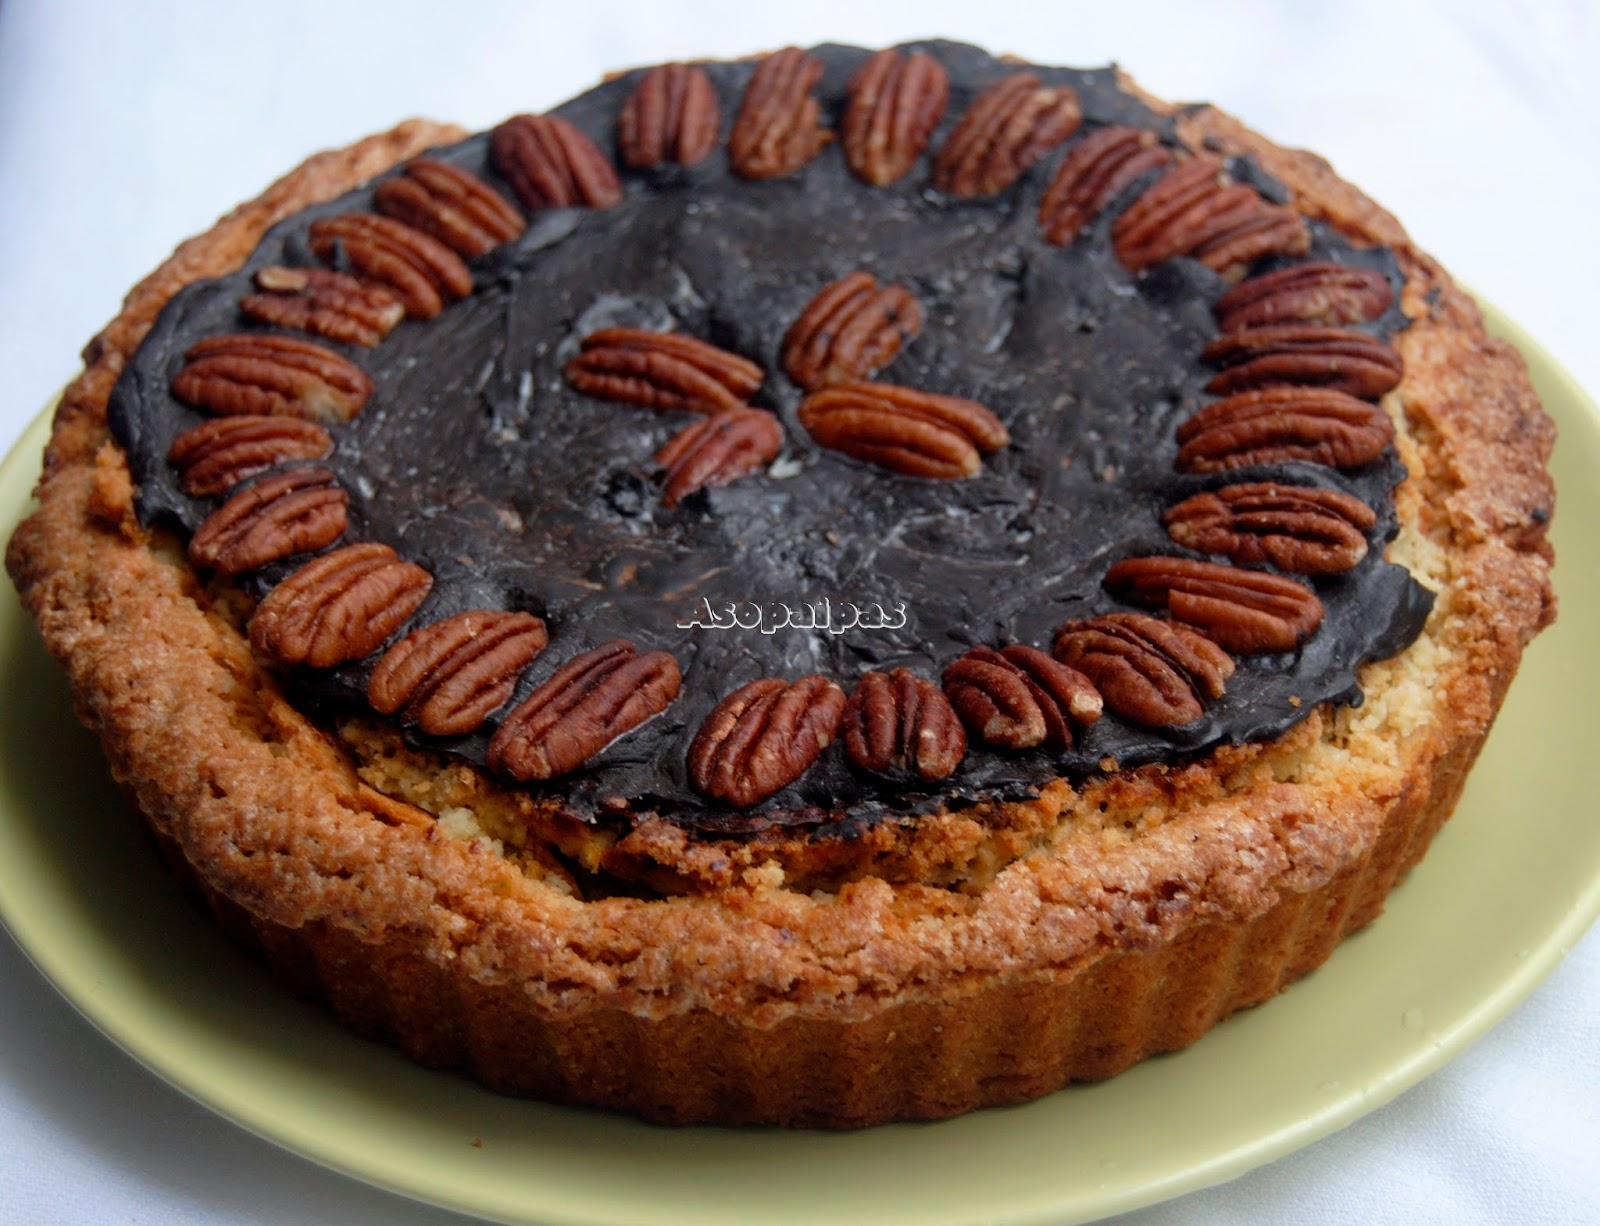 Bourbon Pecan Pie con Ganache de Chocolate